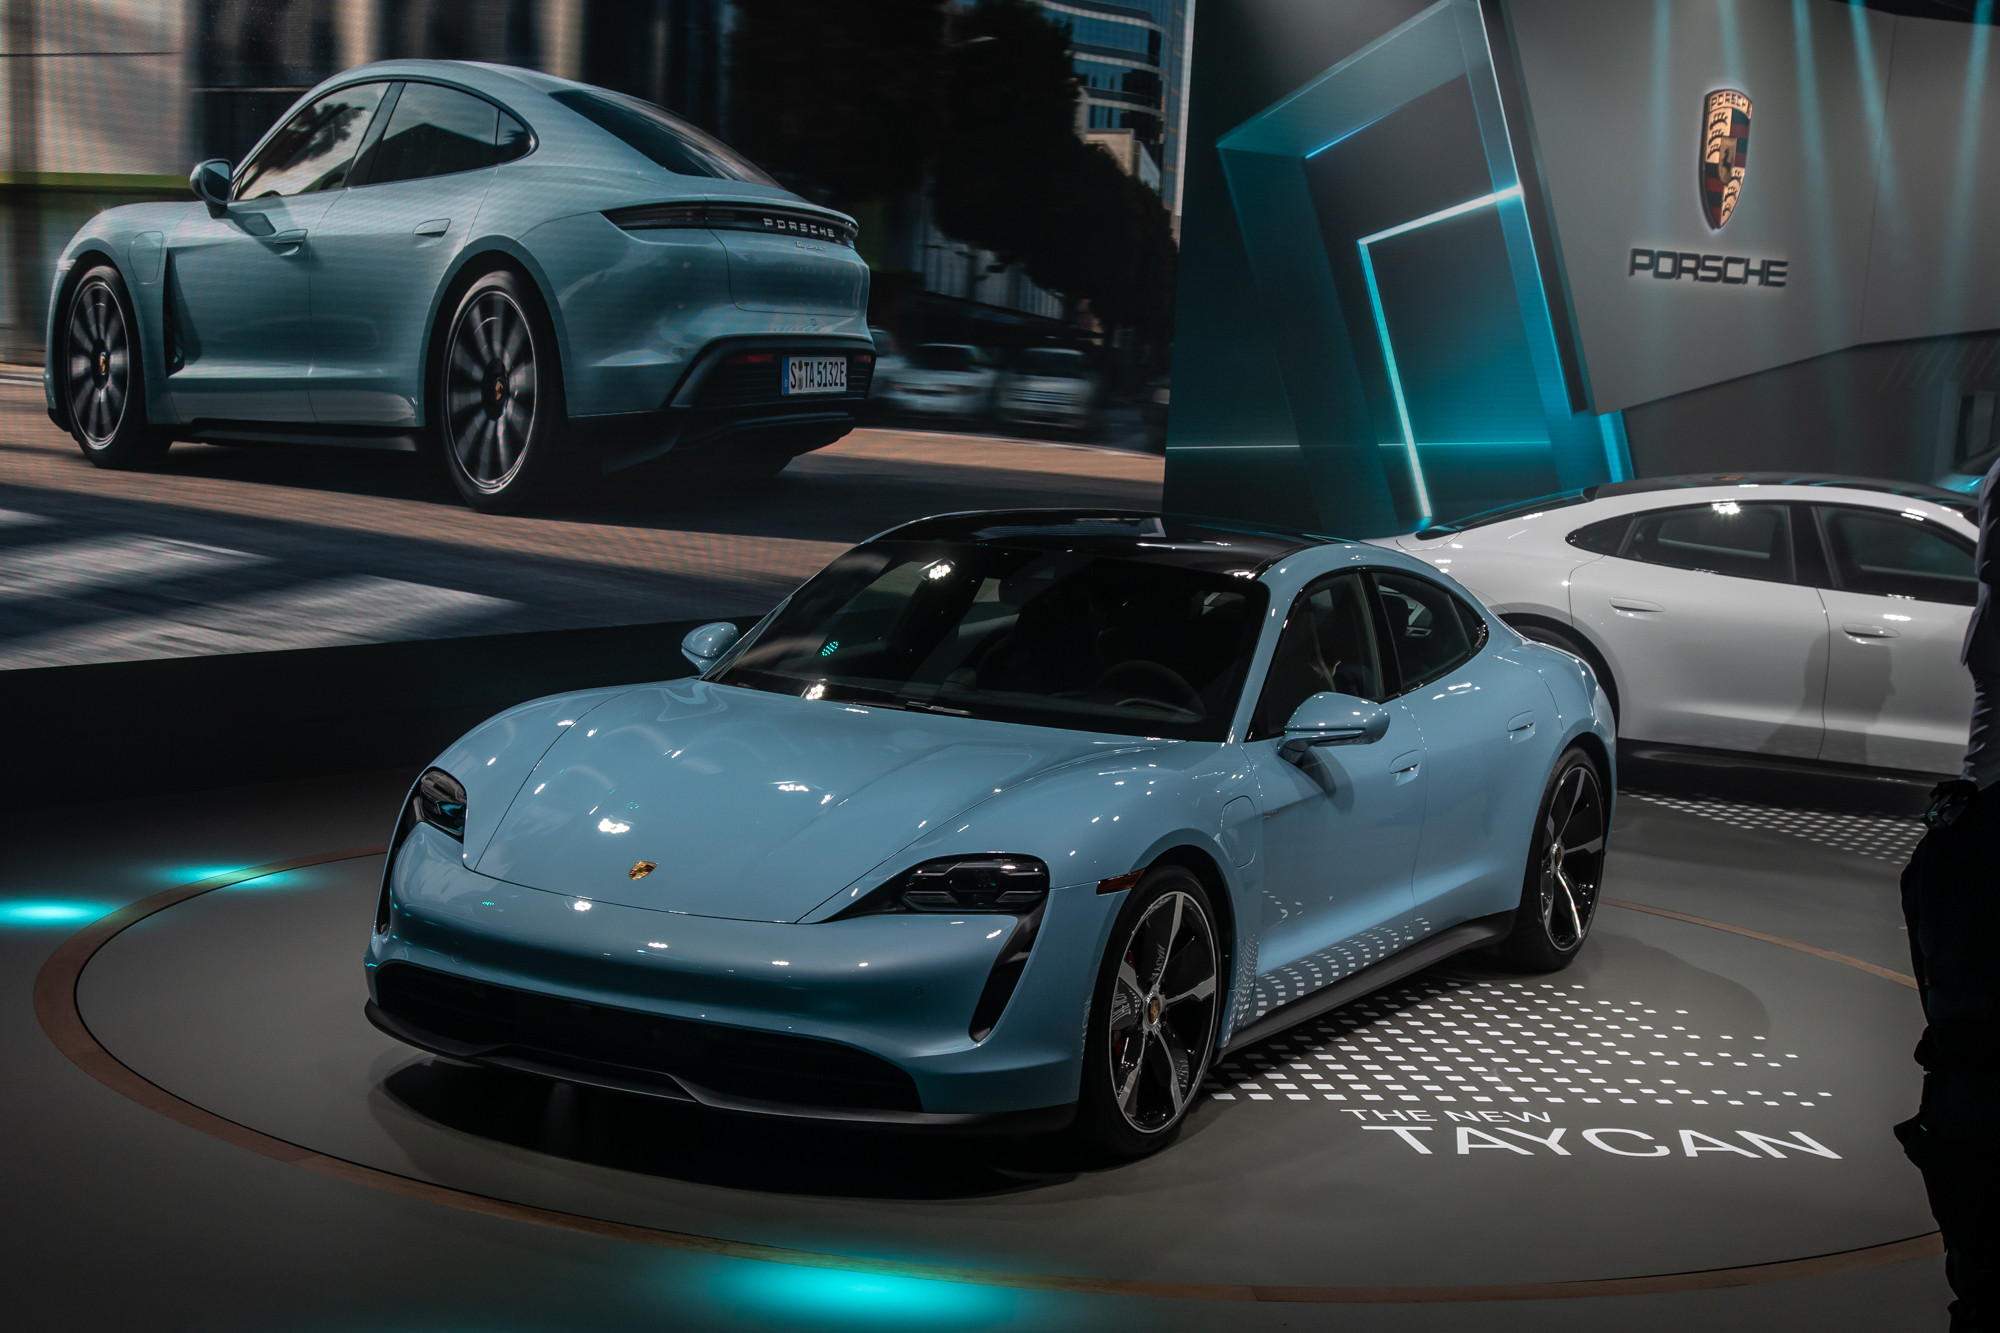 porsche-taycan-4s-2020-cl-03-exterior-front-angle-blue.jpg